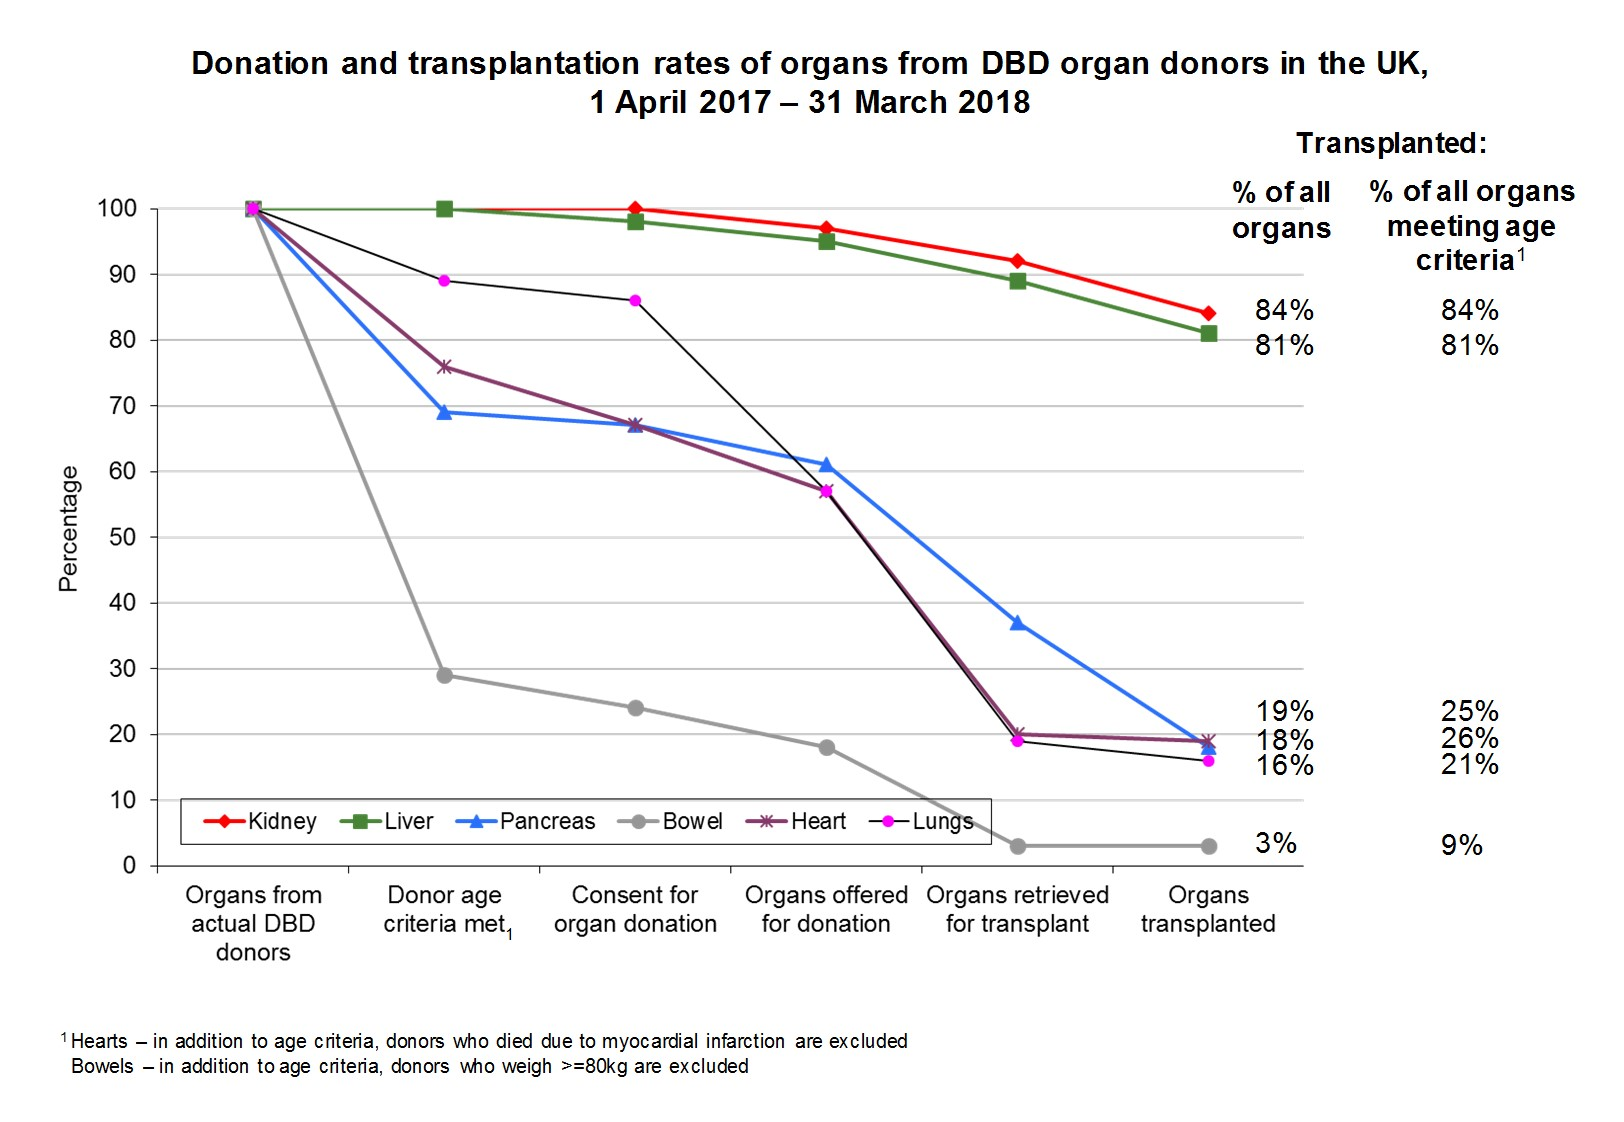 Donation and transplantation rates of organs from DBD organ donors in the UK 2017-18 (jpg)